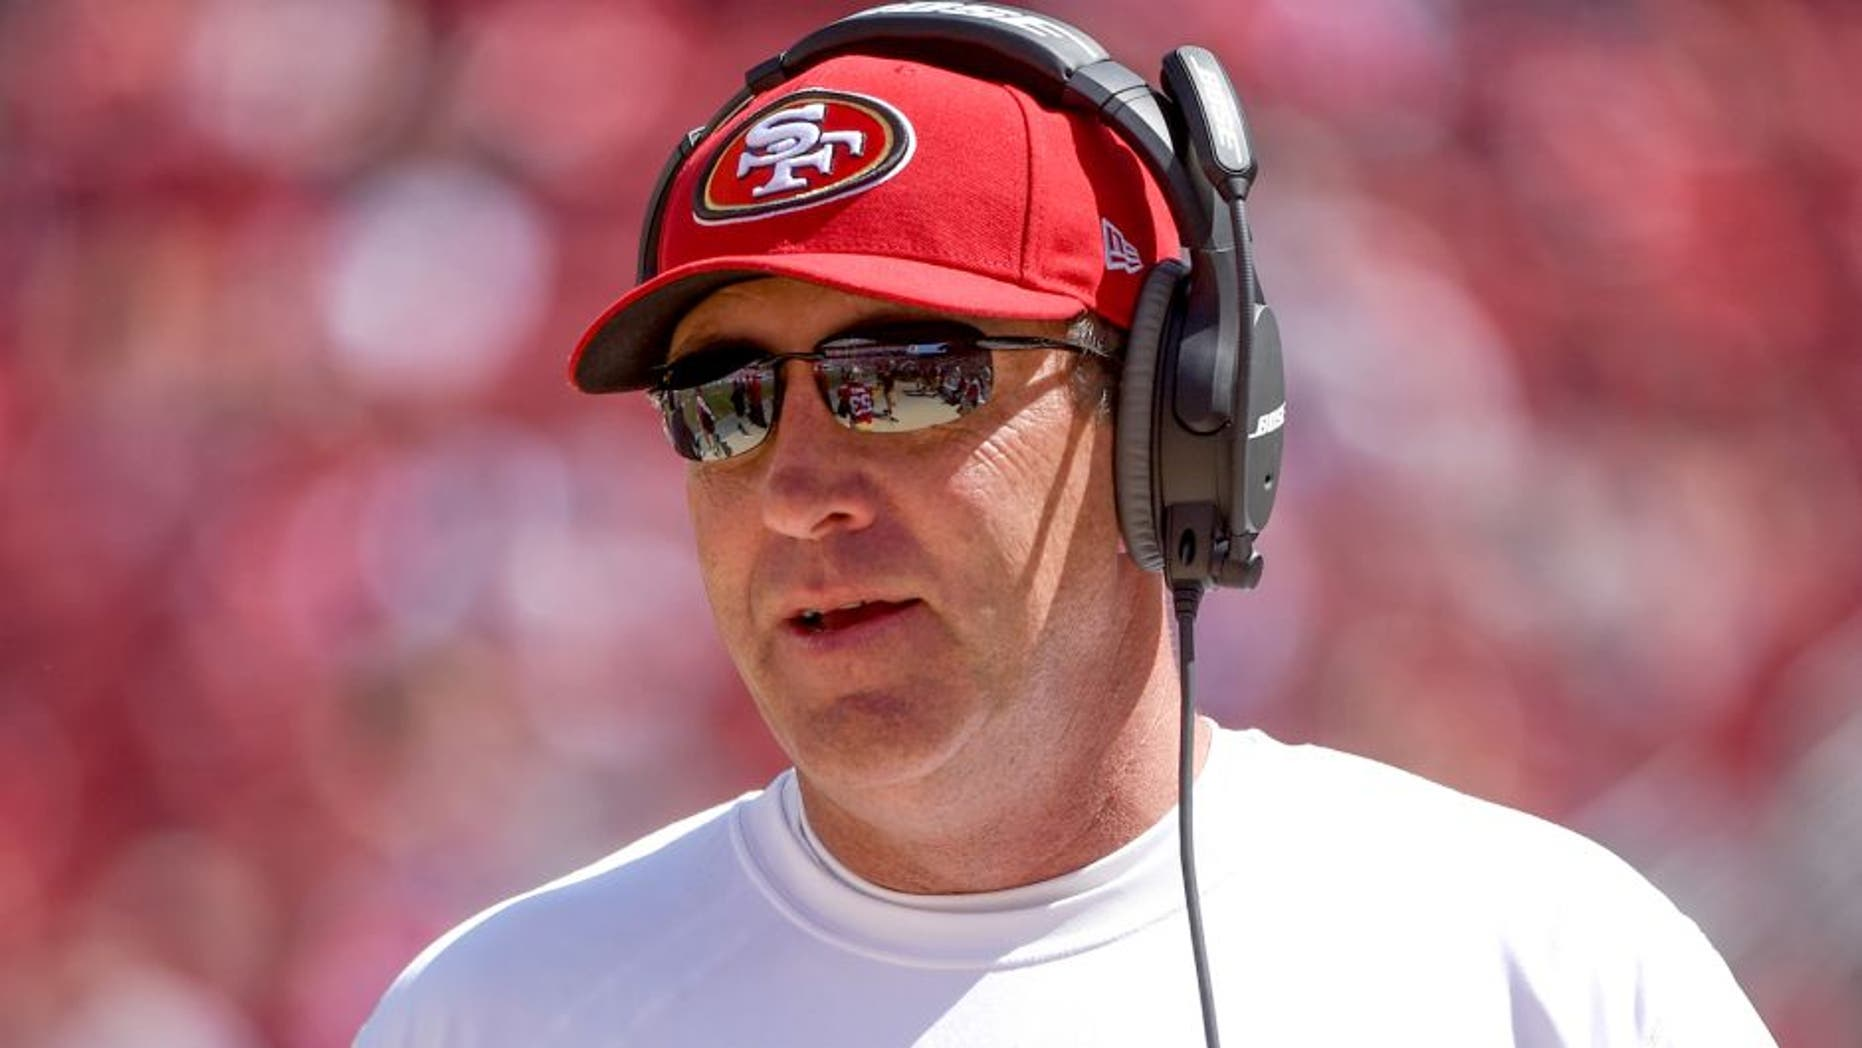 August 24, 2014; Santa Clara, CA, USA; San Francisco 49ers quarterback coach Geep Chryst during the third quarter against the San Diego Chargers at Levi's Stadium. The 49ers defeated the Chargers 21-7. Mandatory Credit: Kyle Terada-USA TODAY Sports